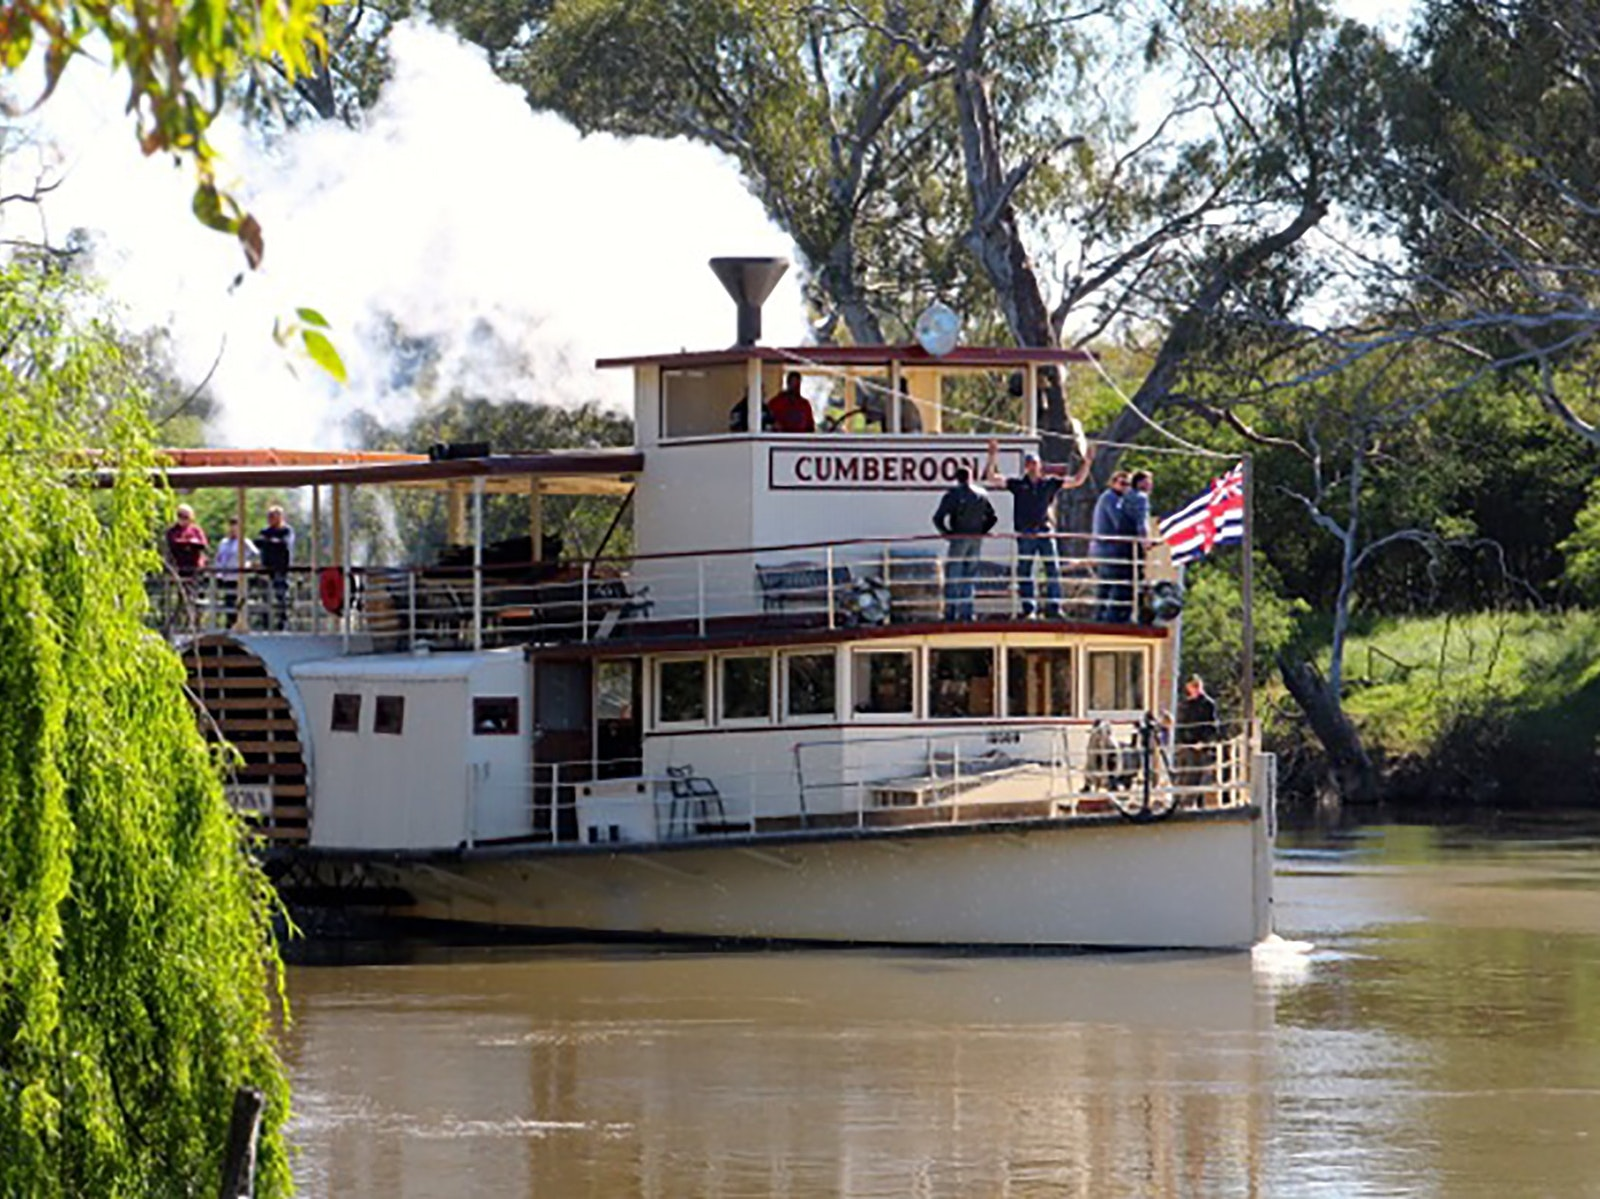 P.S. Cumberoona Yarrawonga to Bundalong Cruise